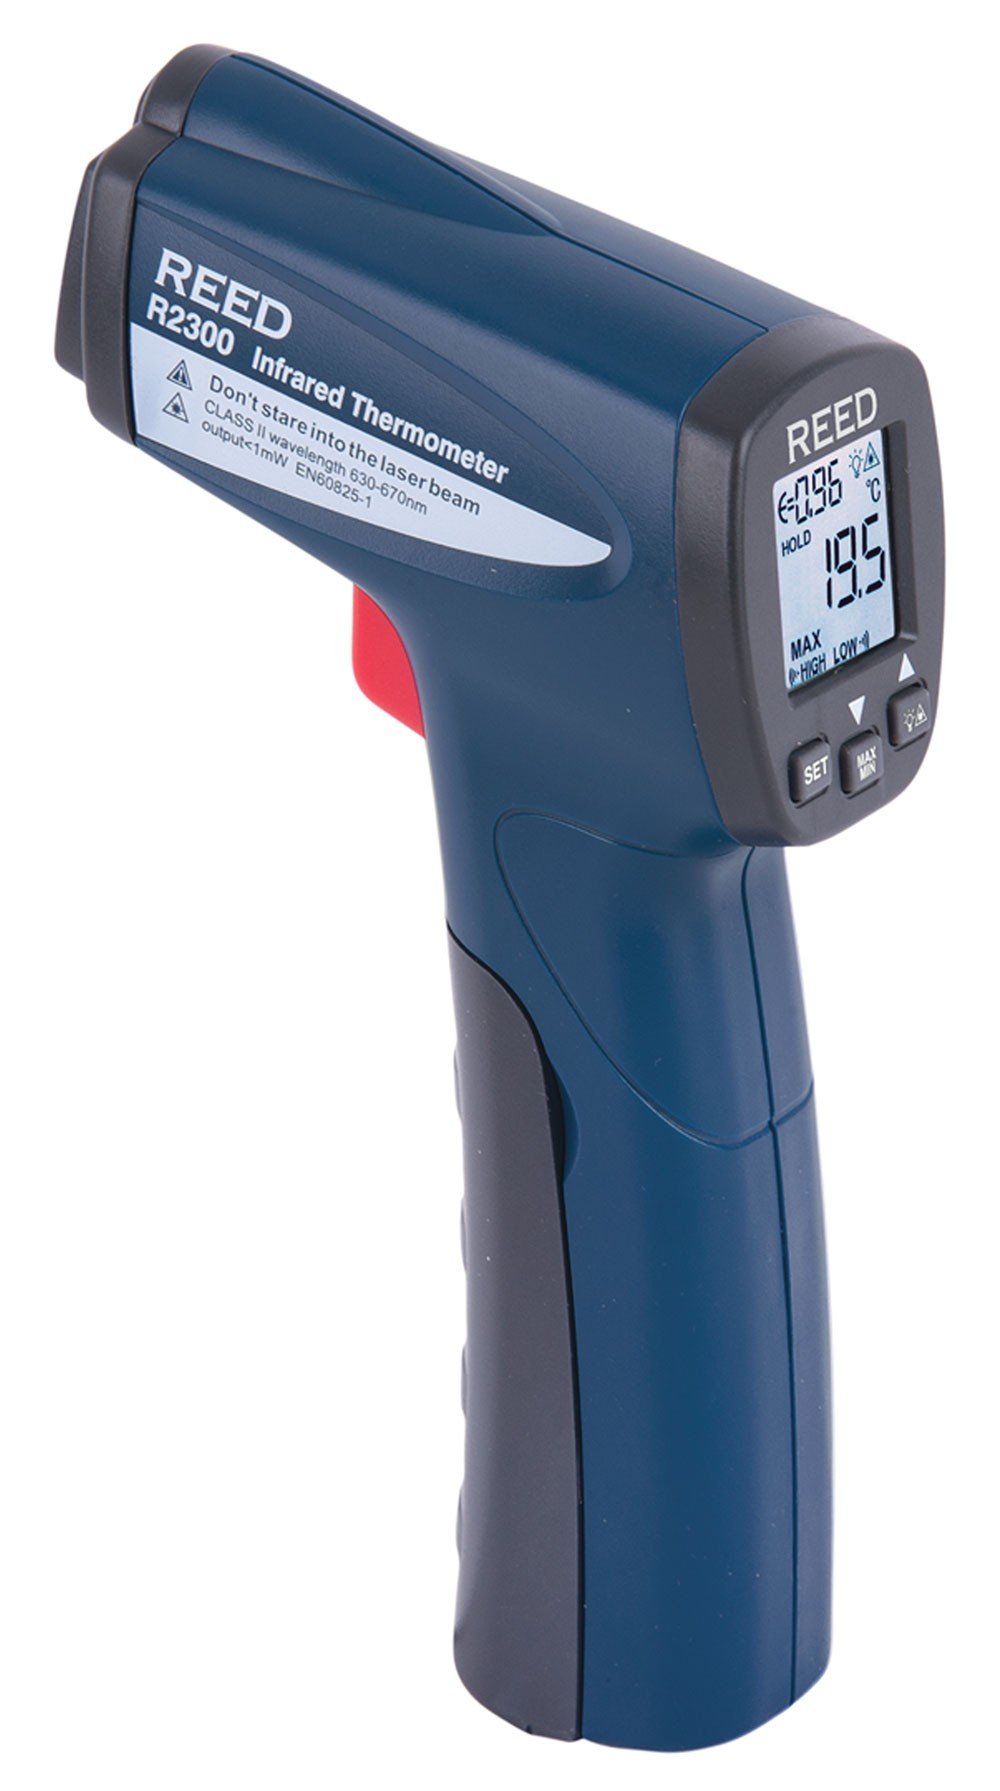 REED R2300 Infrared Thermometer, 12:1, 752°F (400°C)-REED R2300 2